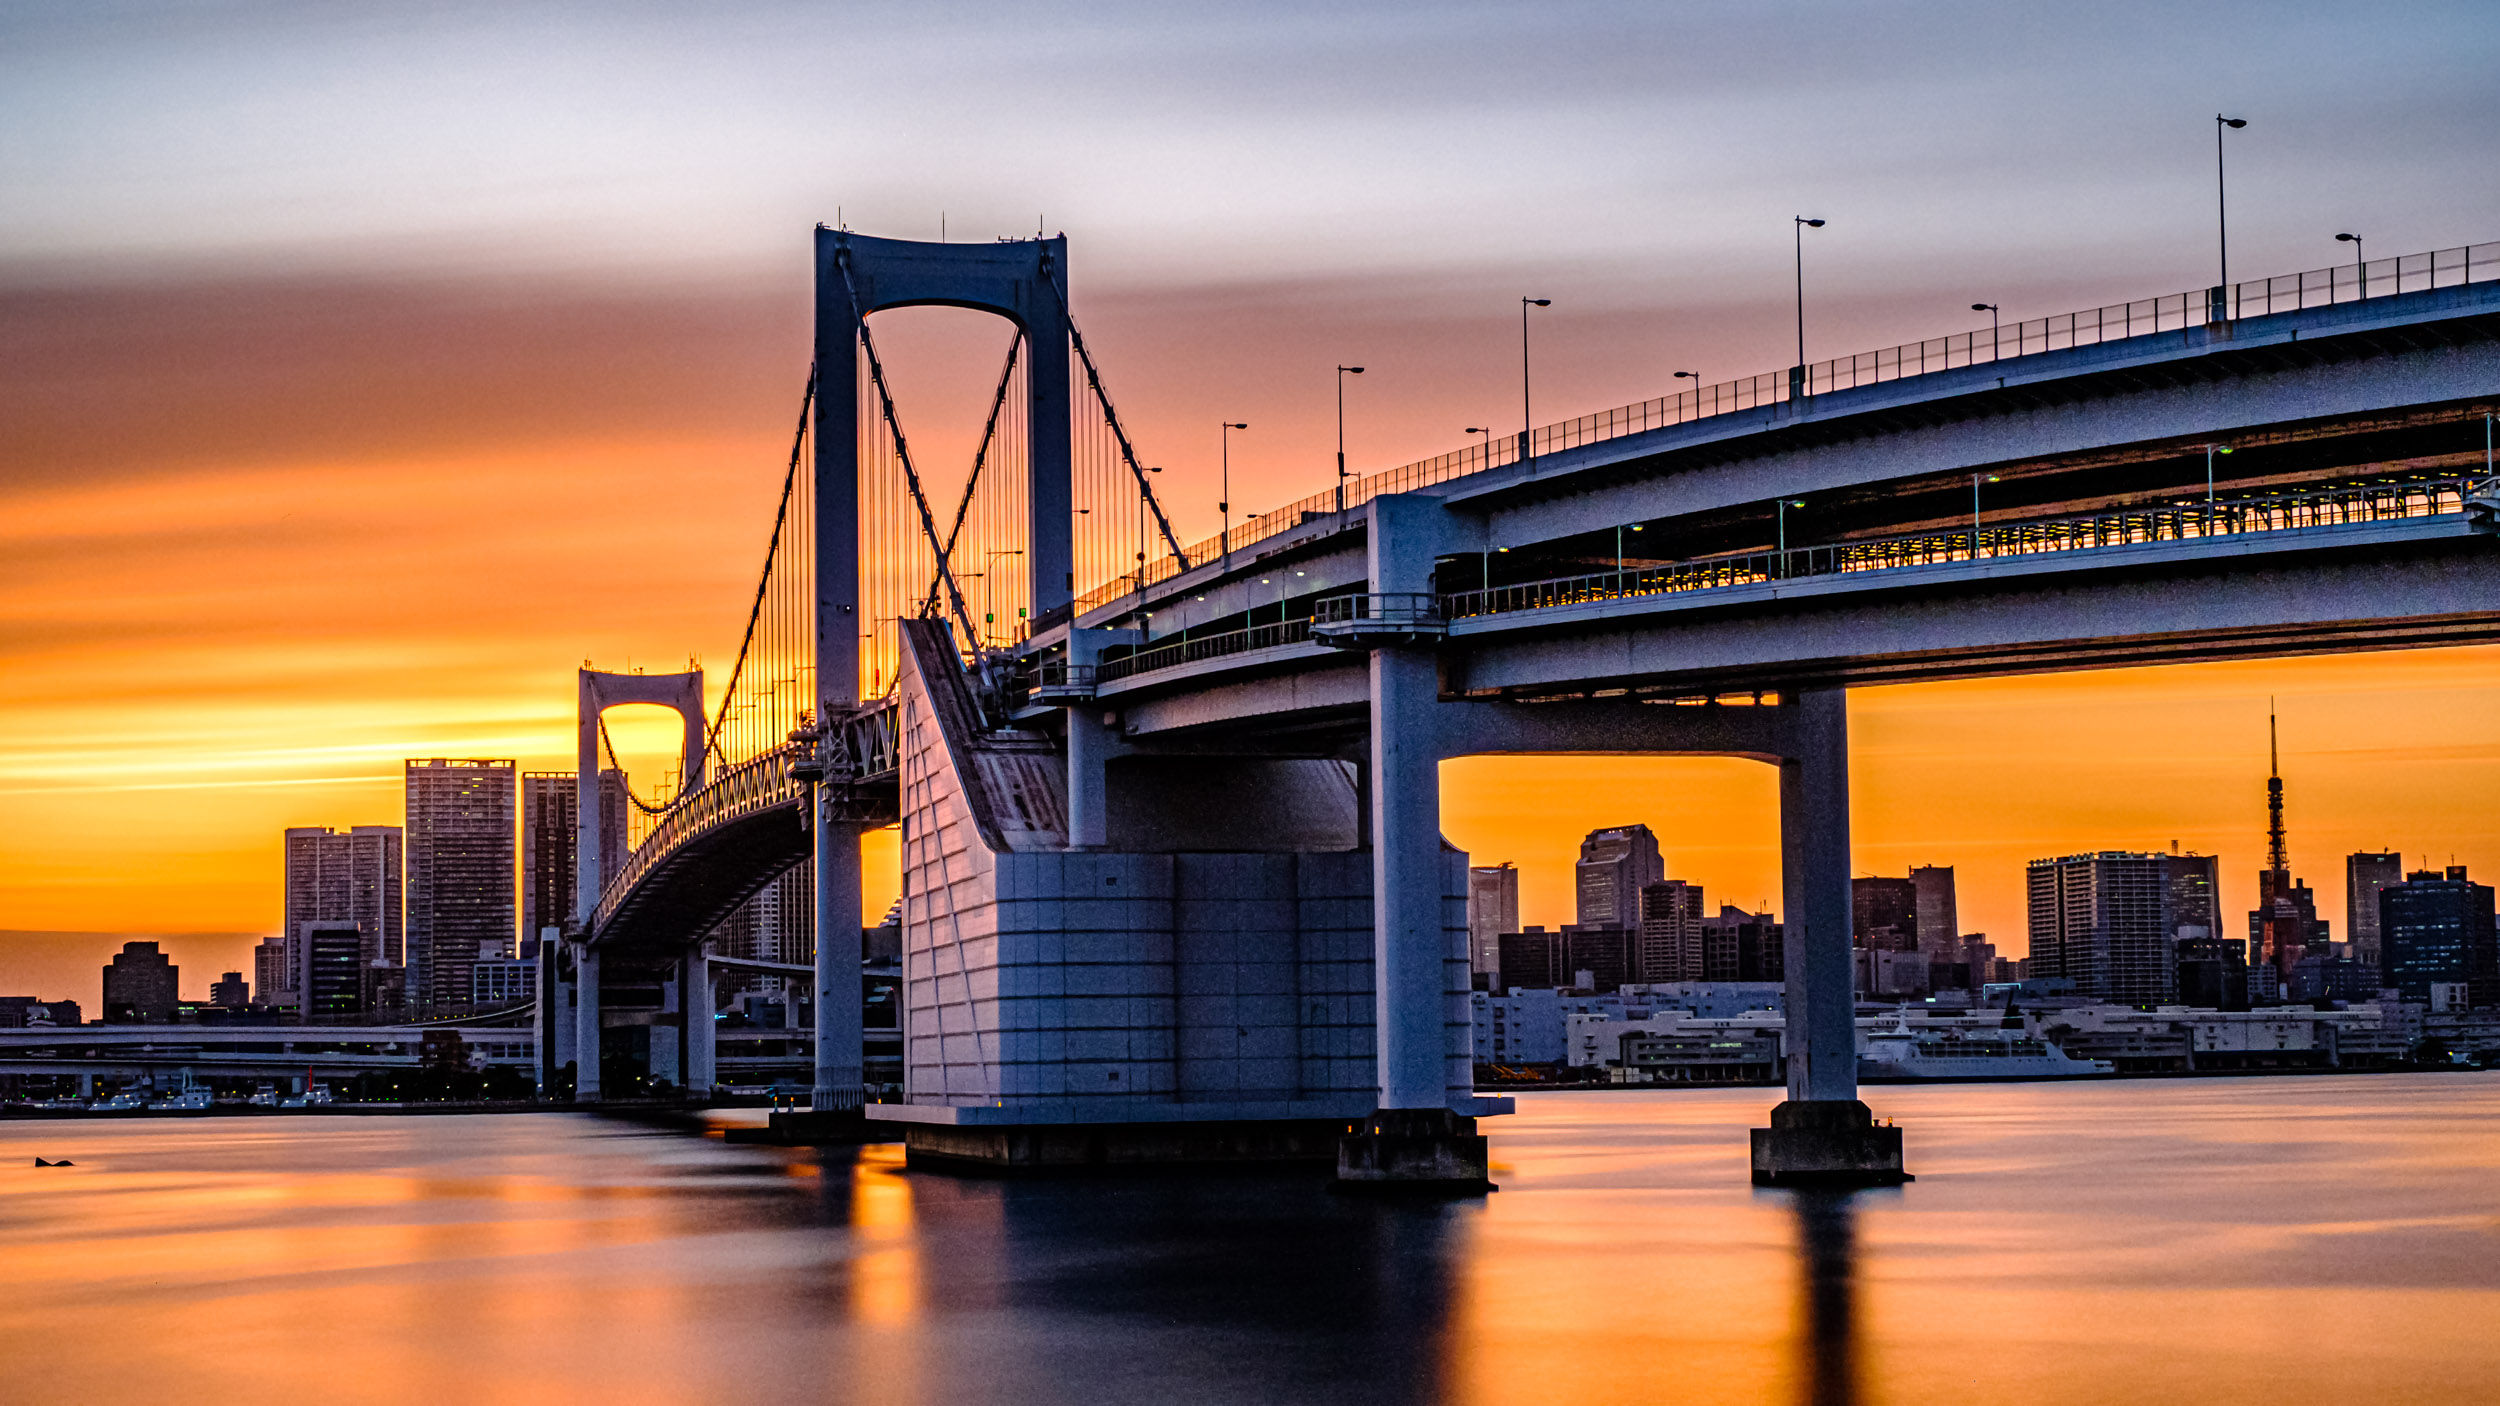 A four minute exposure of Rainbow Bridge and Tokyo taken at f/8 just before the sun went down